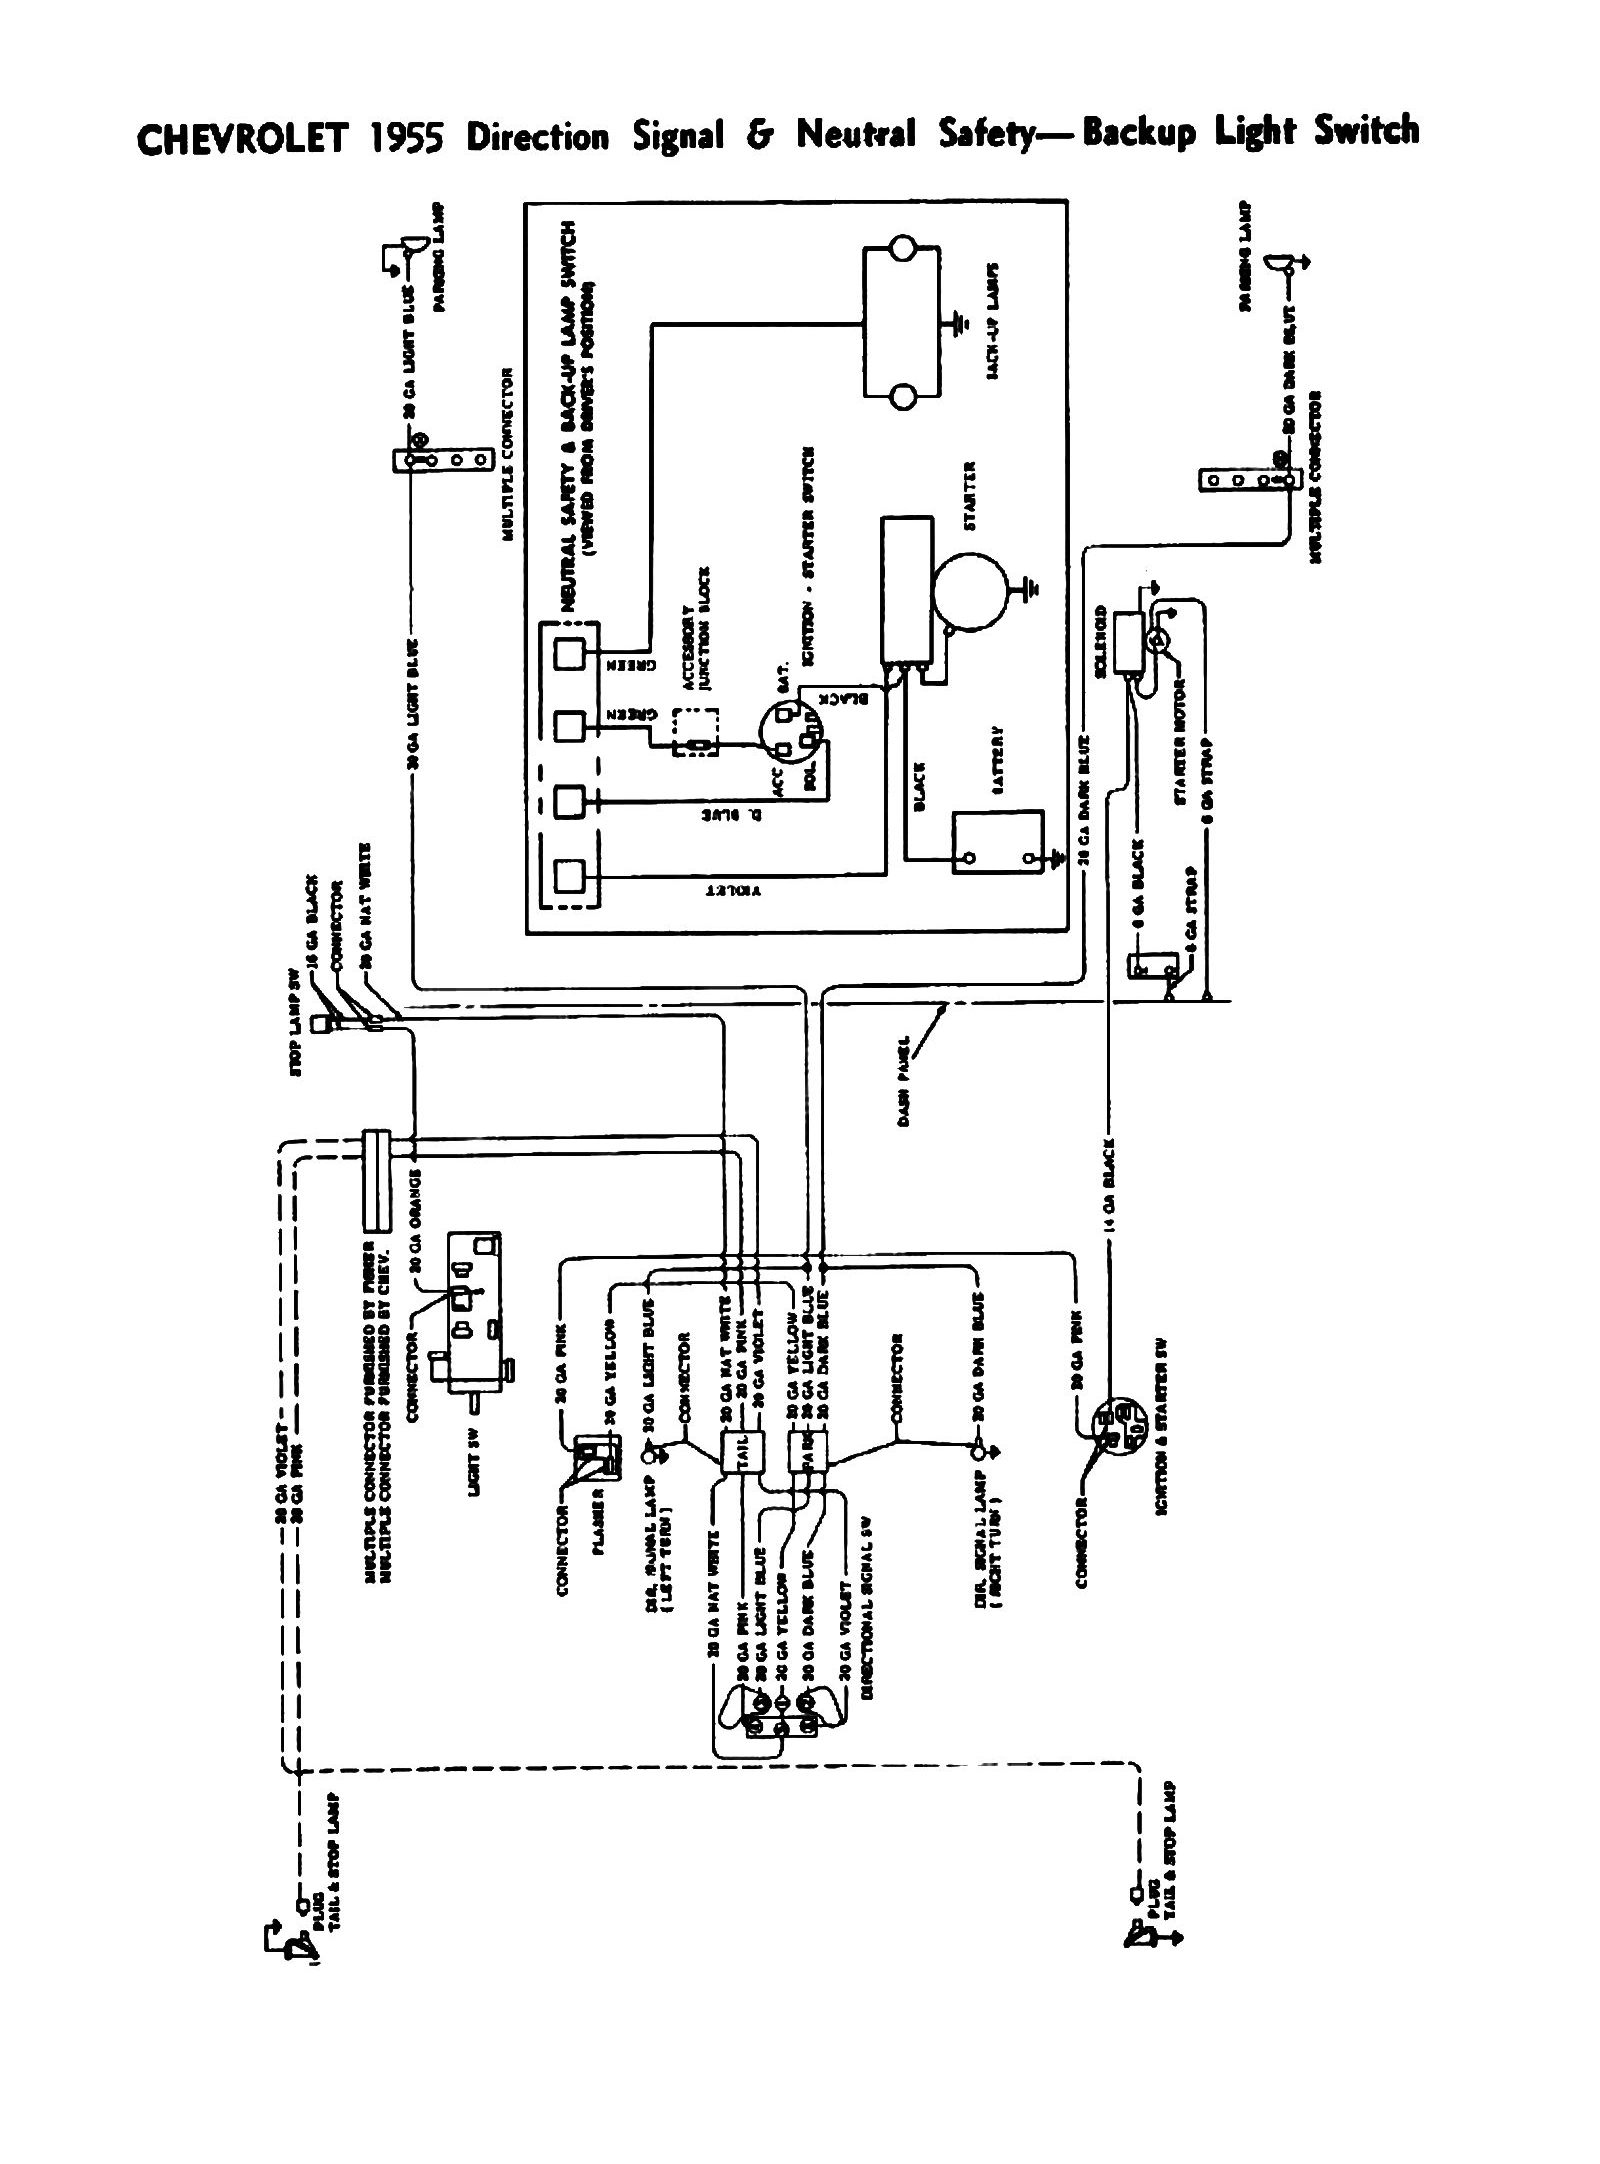 55signal chevy wiring diagrams wiring diagram for a switch at fashall.co